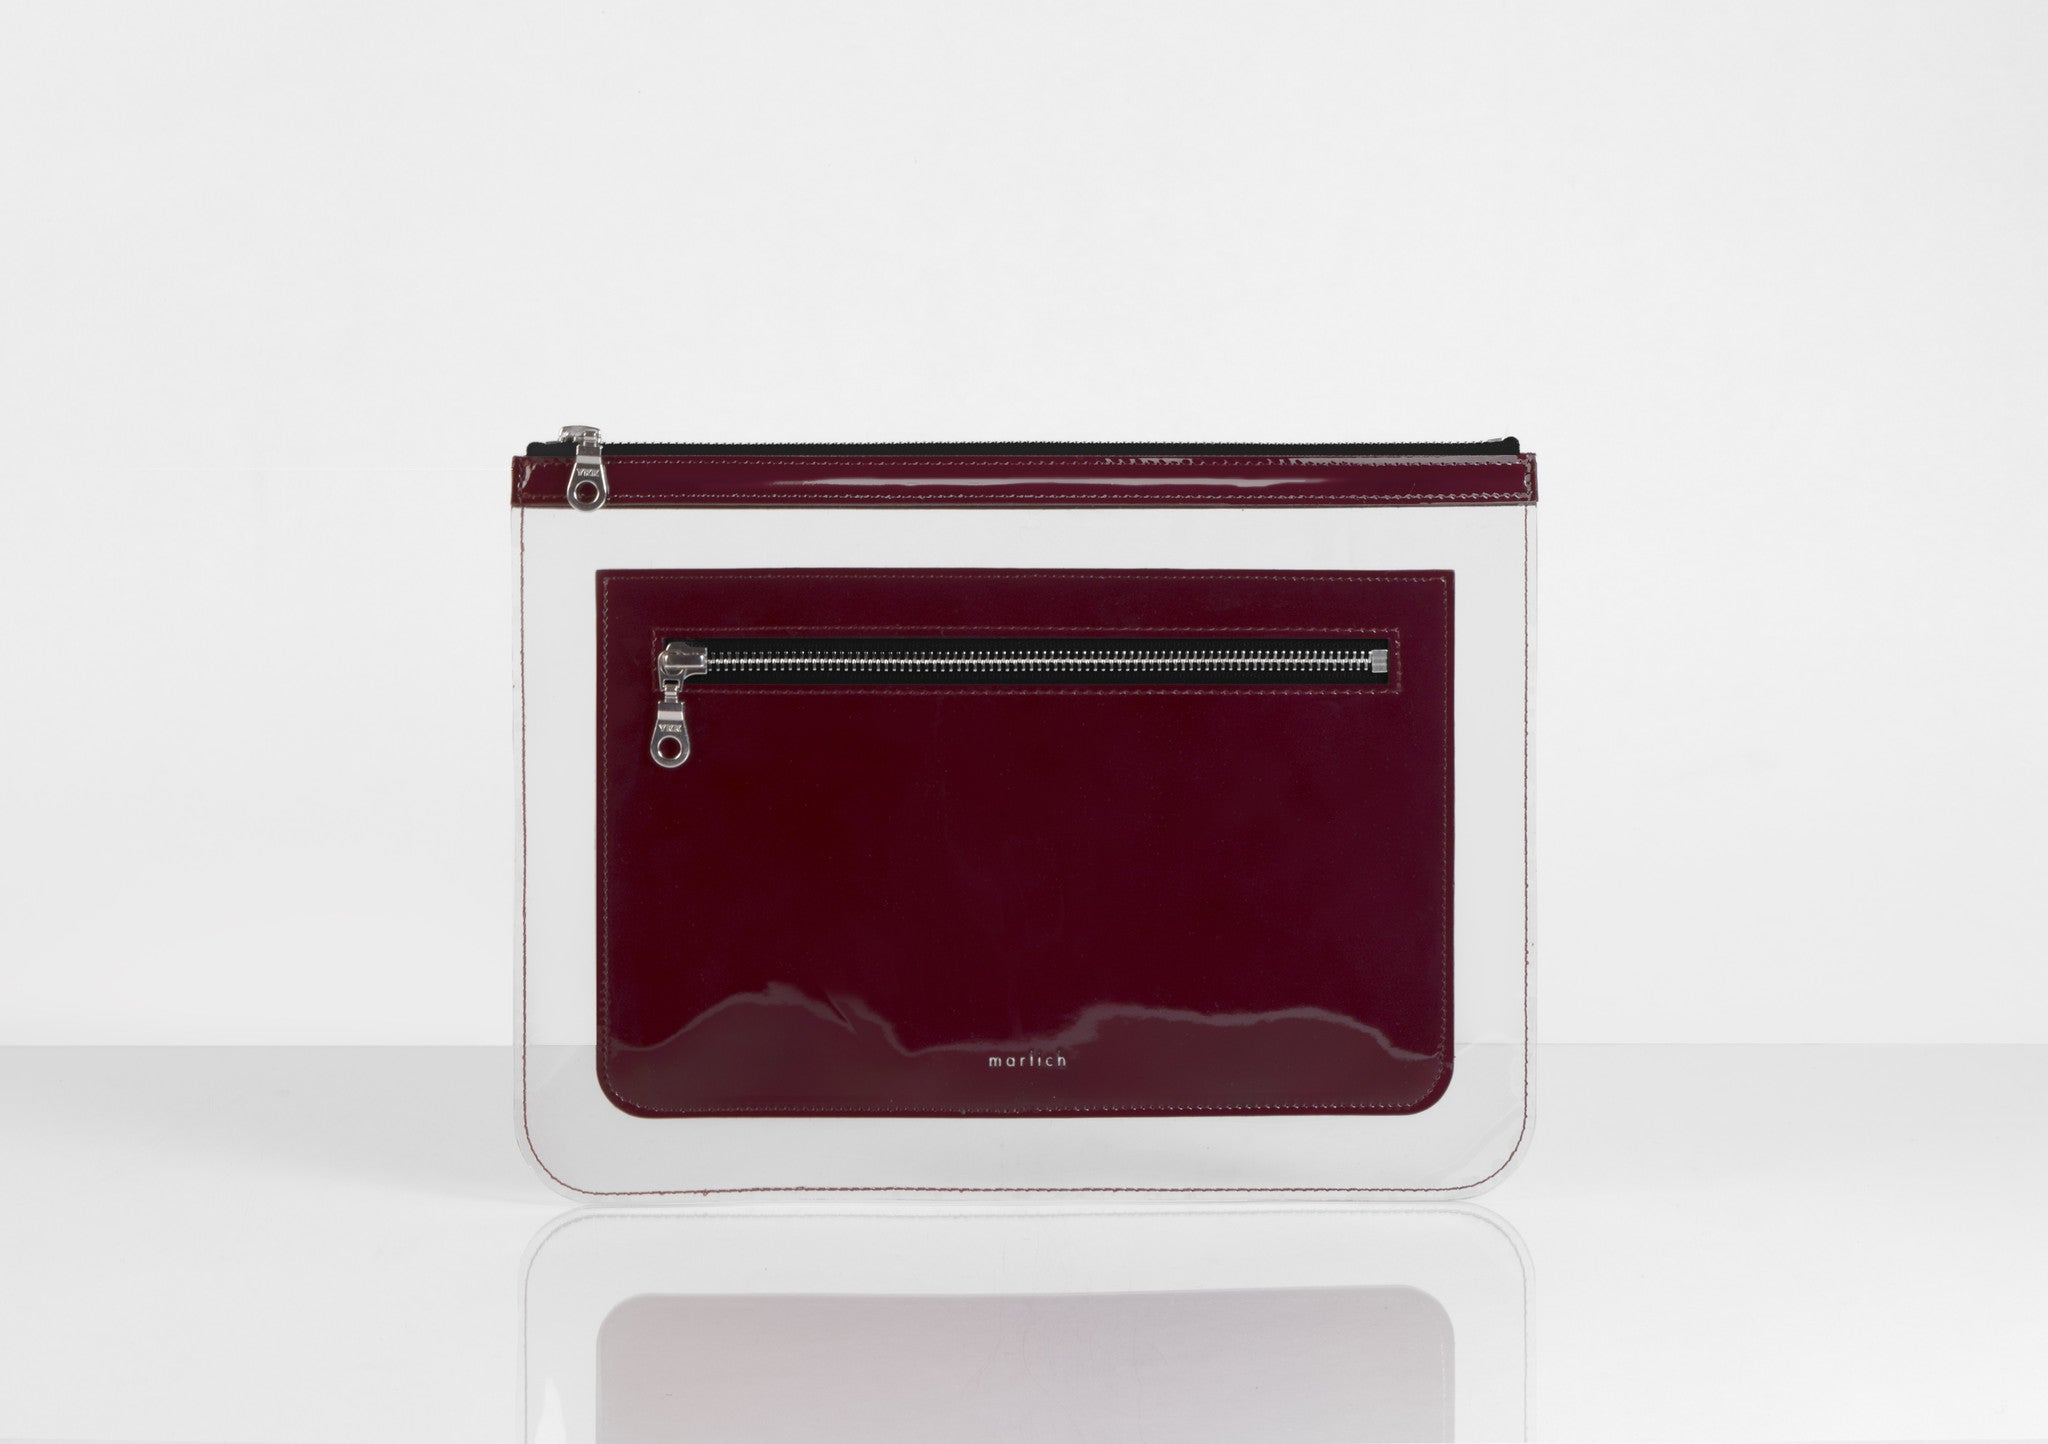 Barnett Clutch dark red patent leather